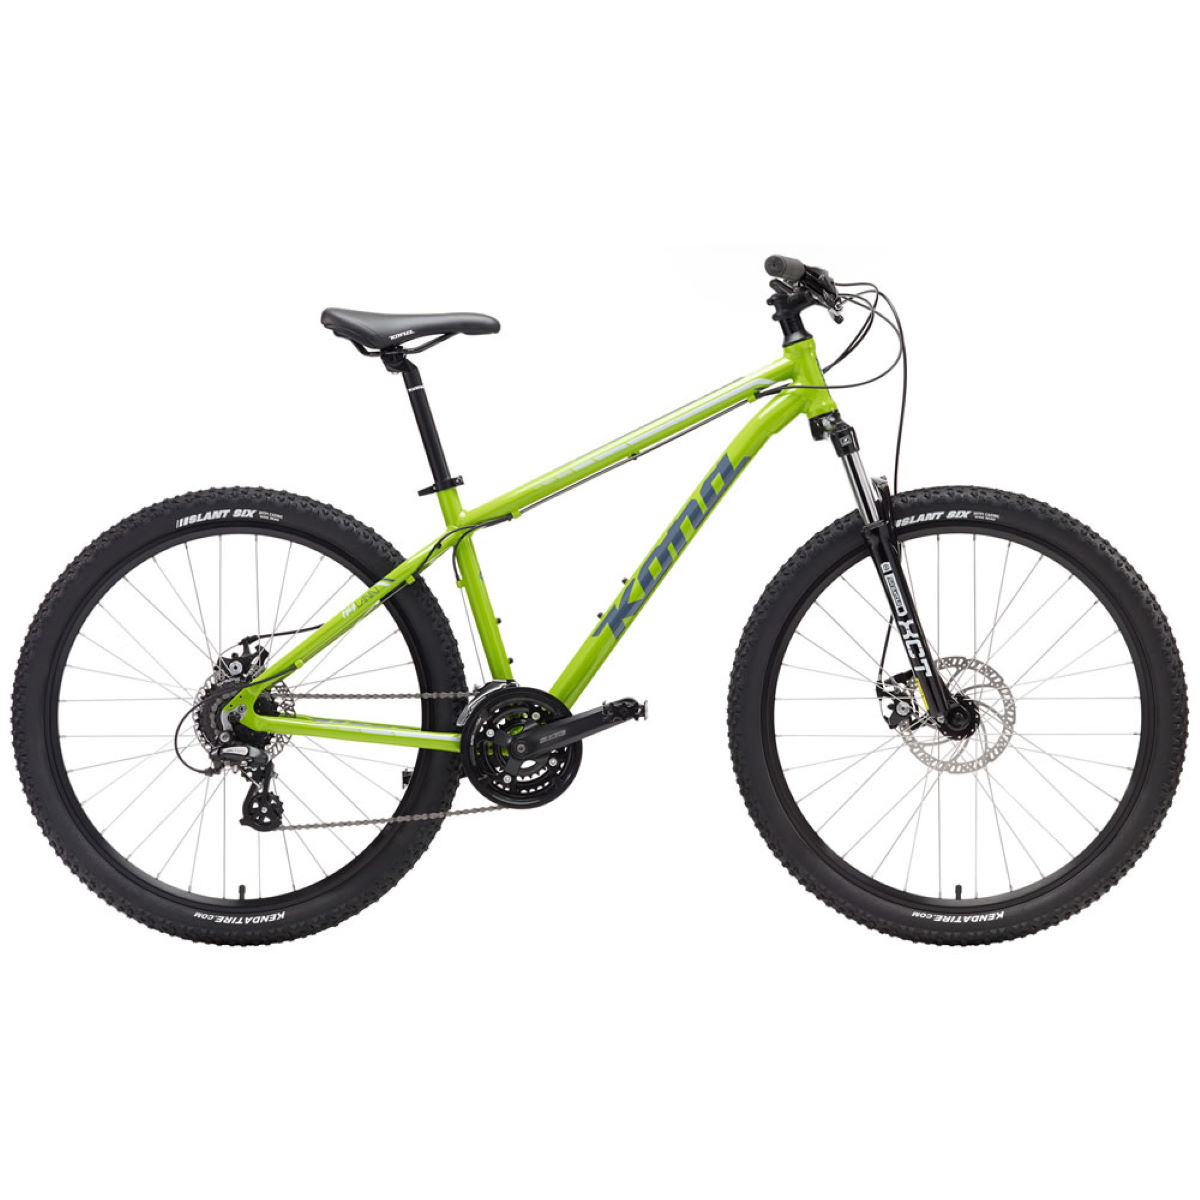 Kona Lanai (2017) Mountain Bike   Hard Tail Mountain Bikes